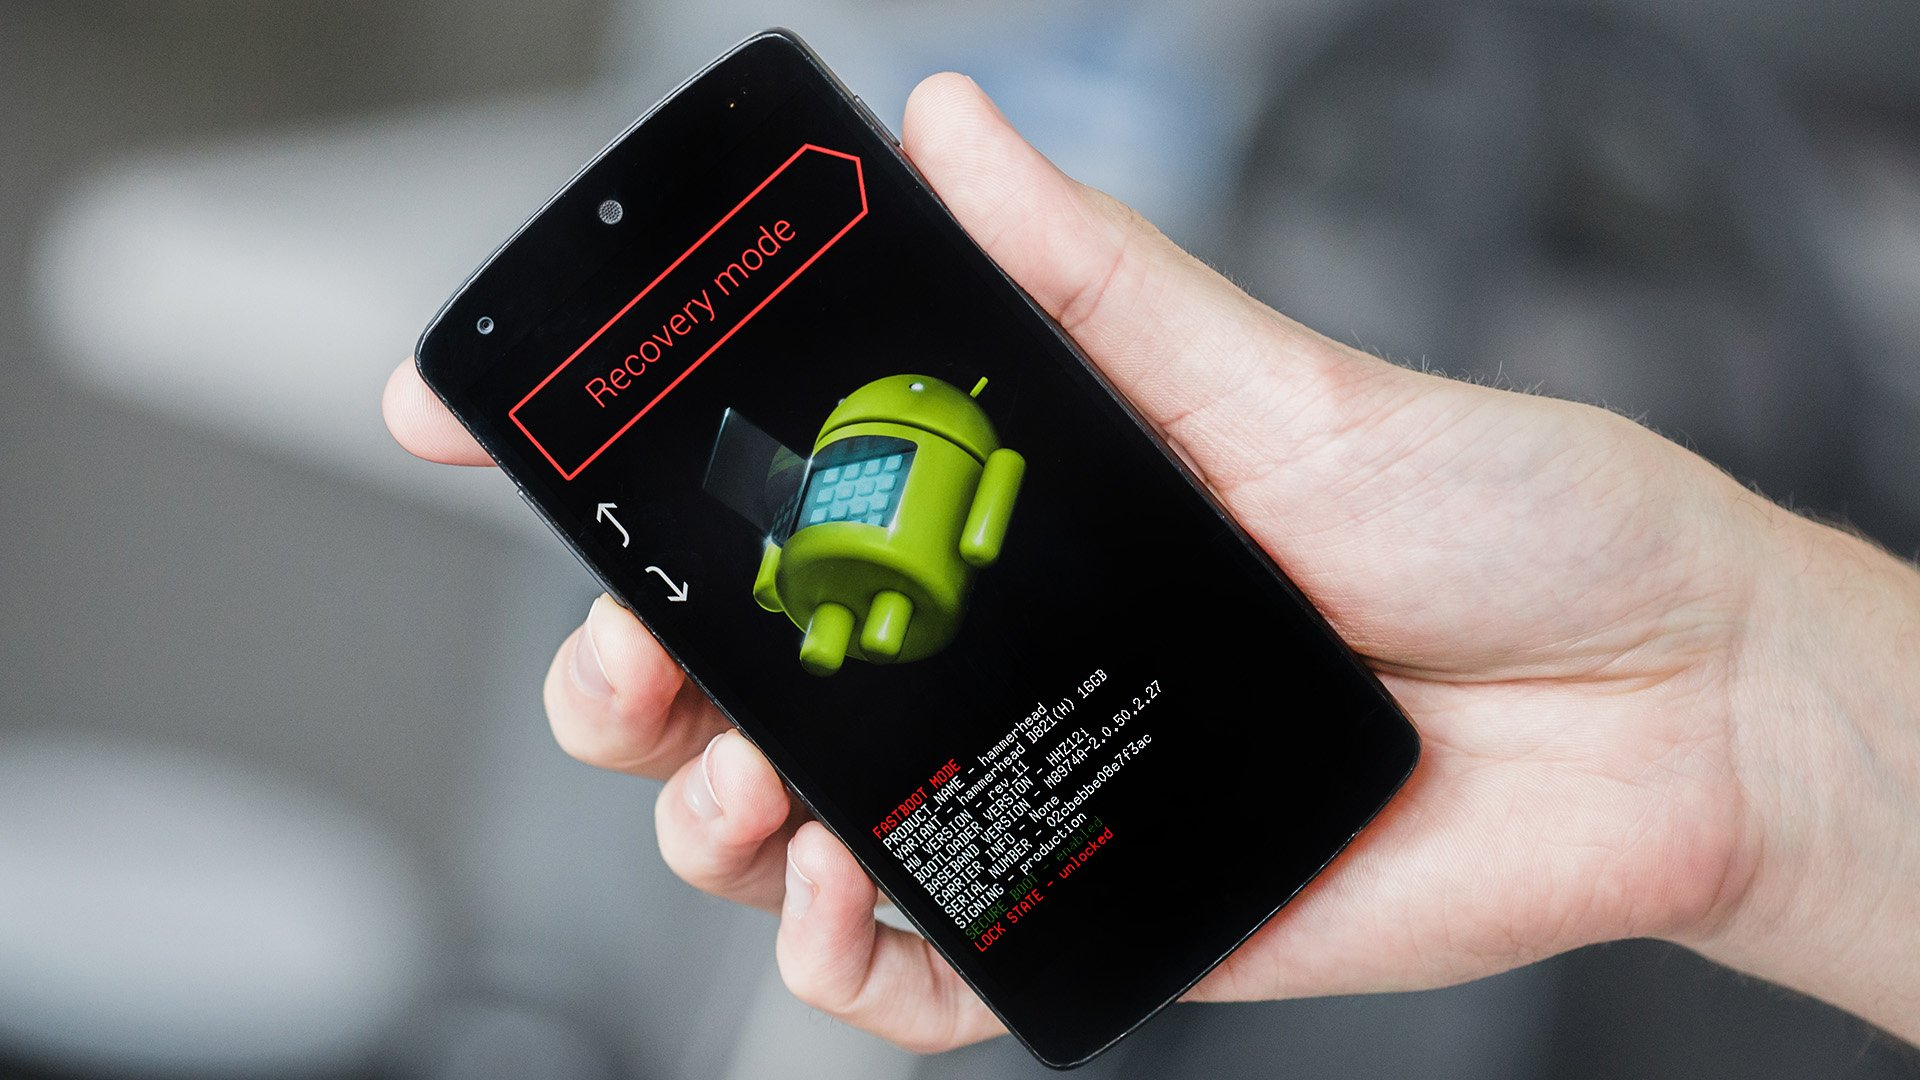 How To Unlock Nexus 5 Bootloader The First Step For Modding 1 Cek Status Androidpit